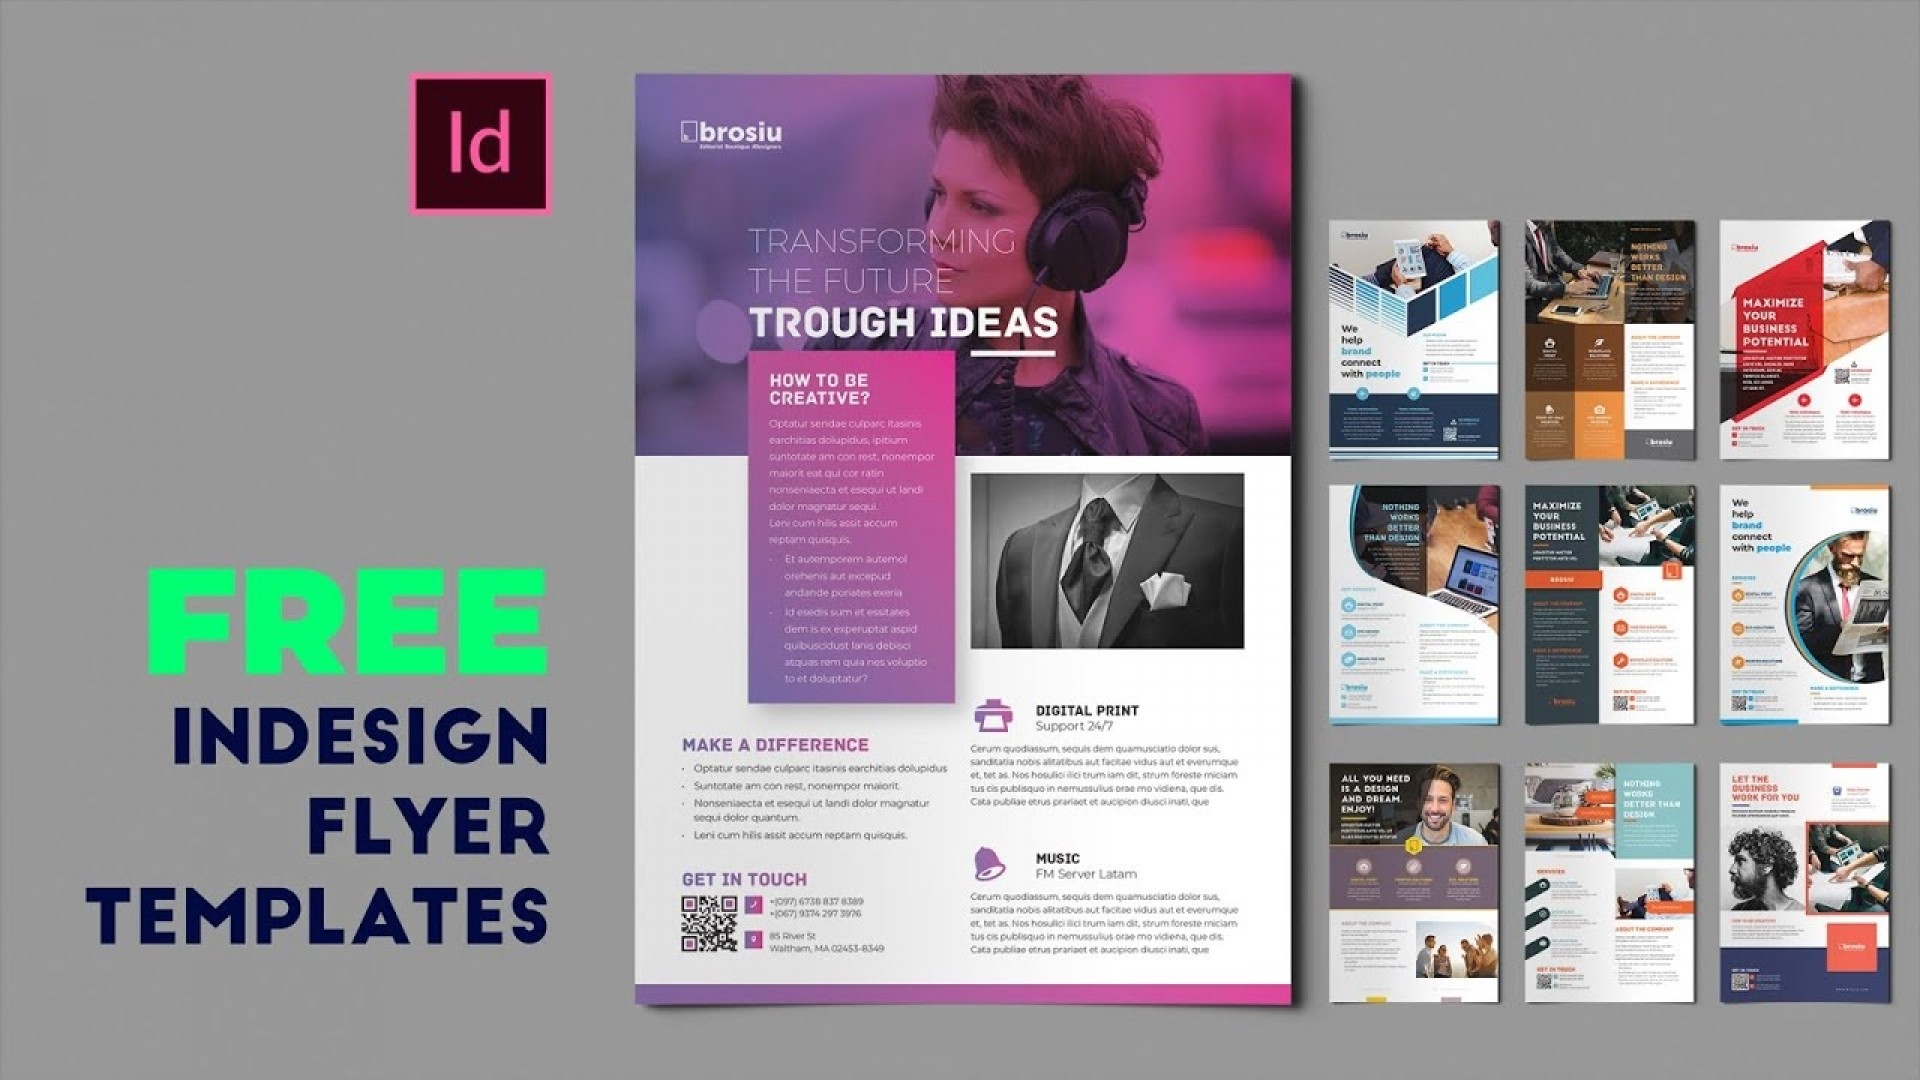 008 Beautiful In Design Flyer Template Picture  Indesign Free Adobe Download1920